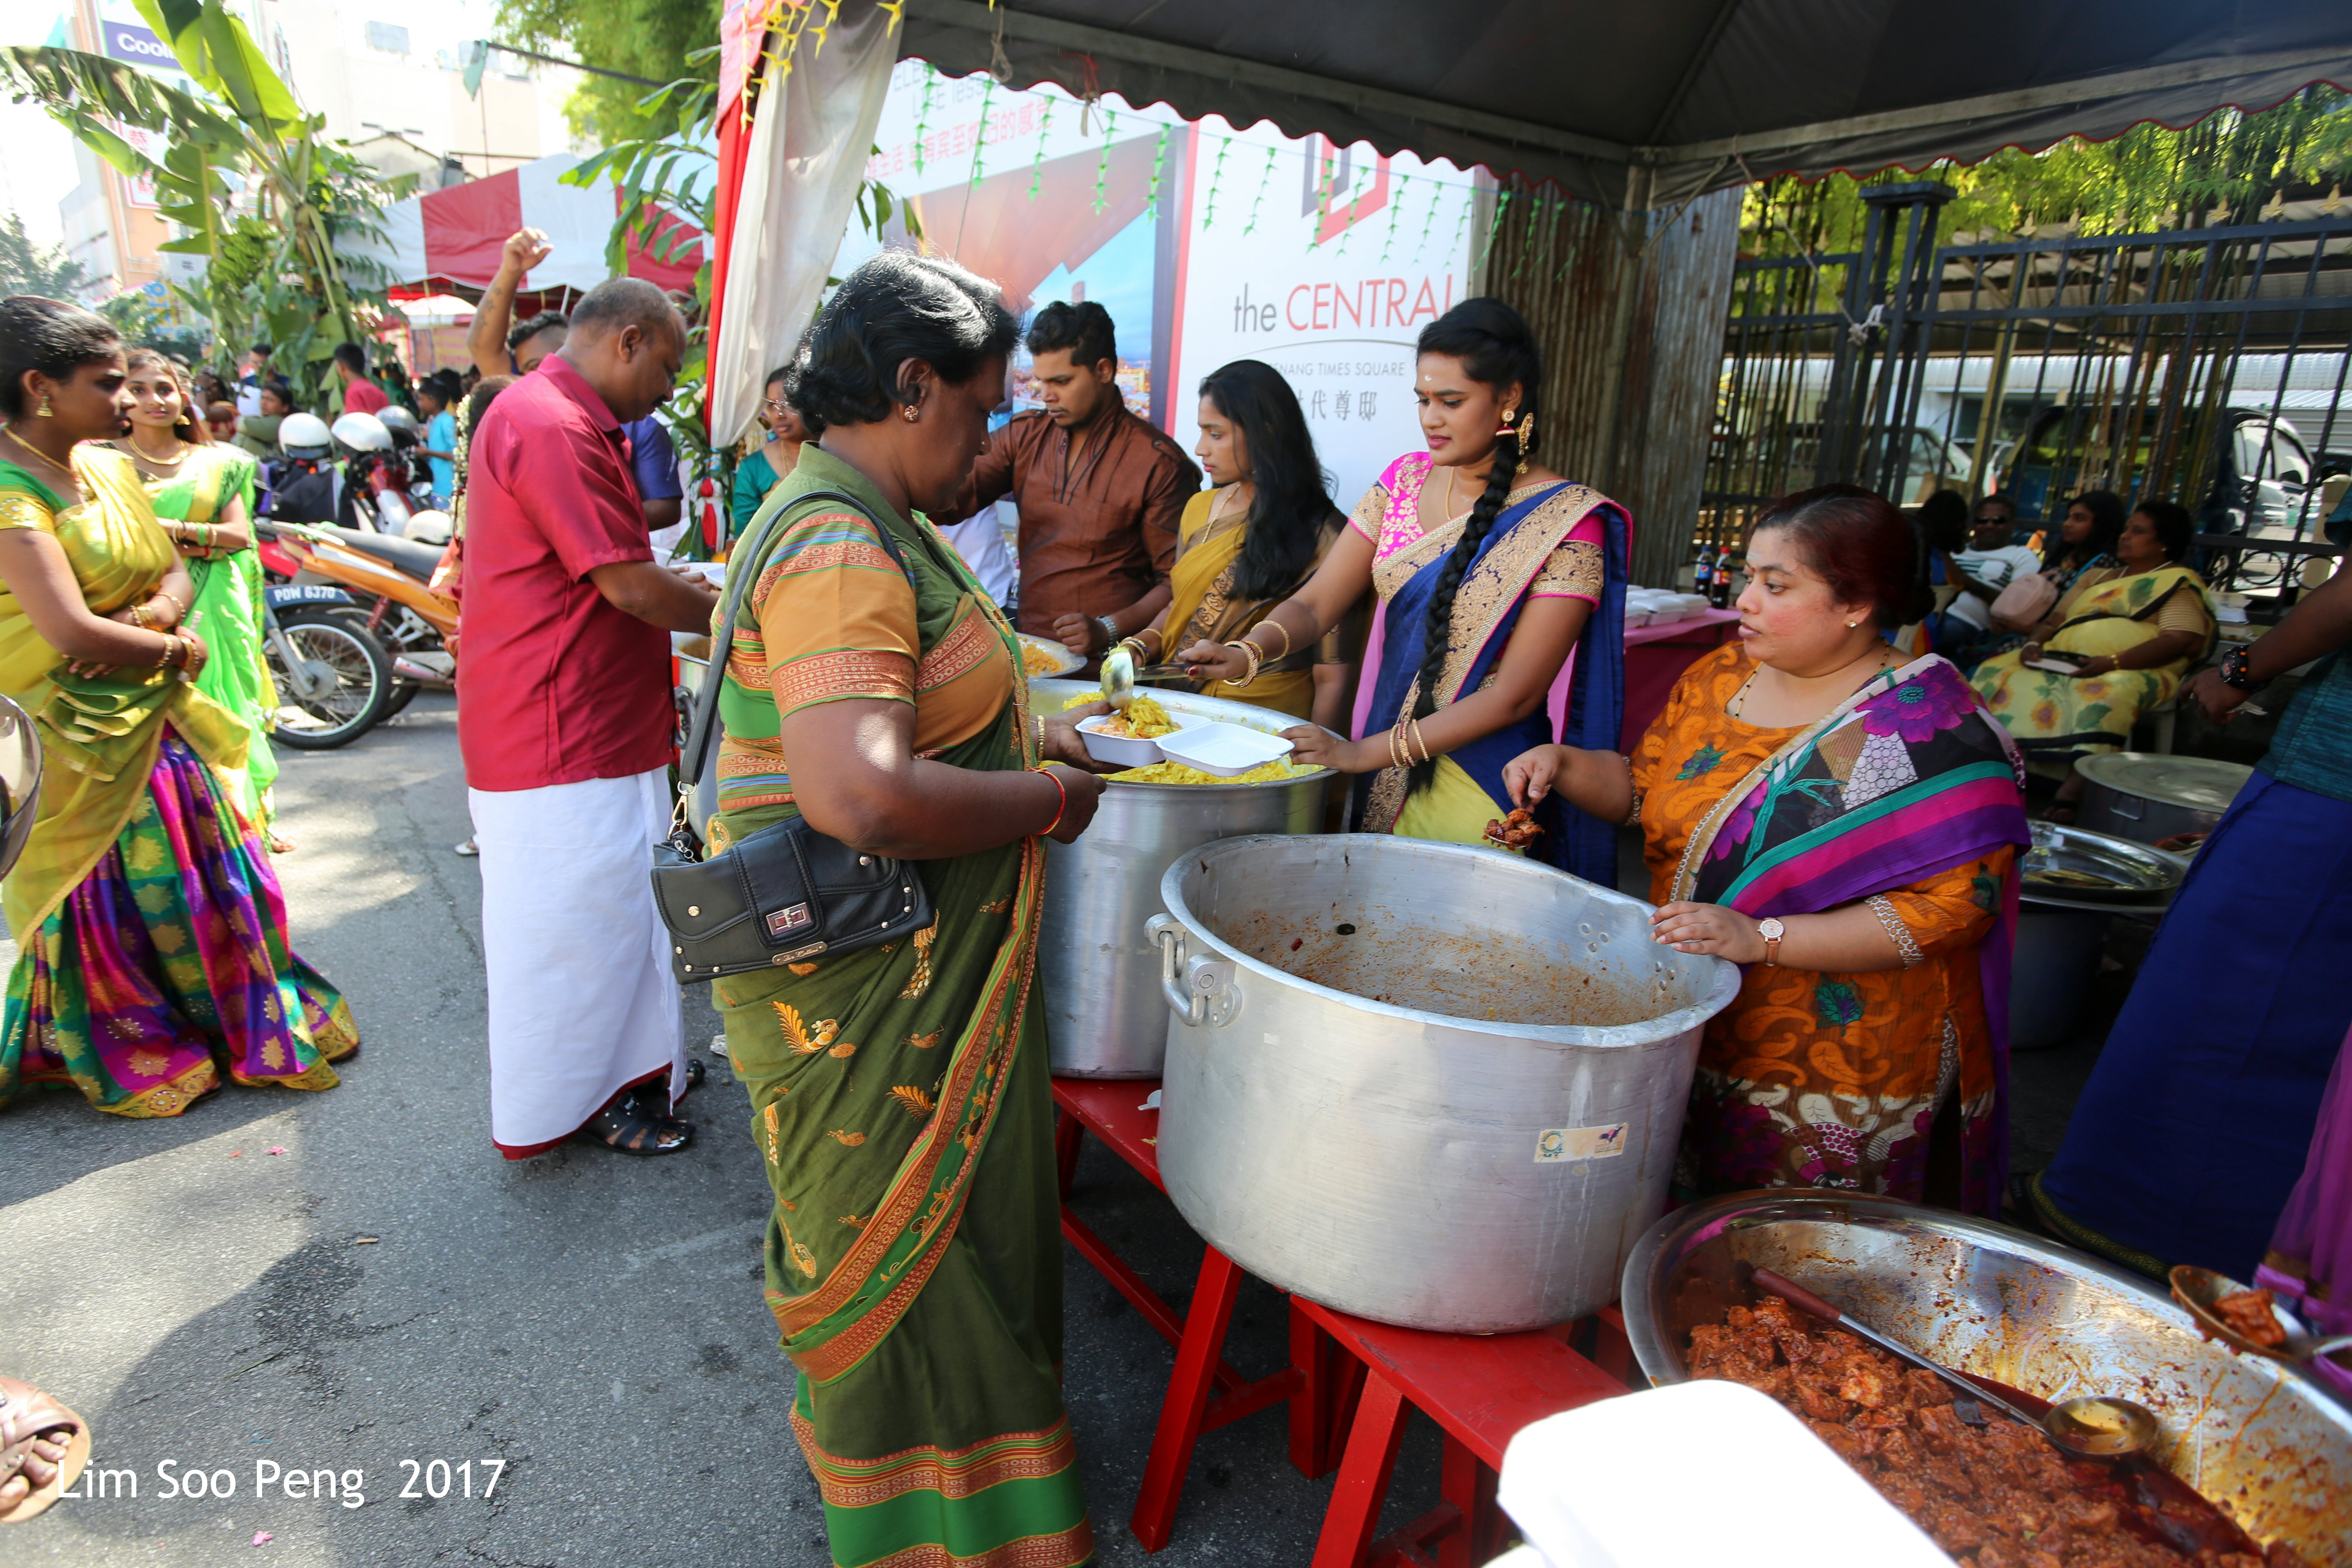 penang hindu personals The list of things to do in penang to get you started on your island tour read on and you might want to stay just a little longer than planned  things to do in penang, malaysia: a list.